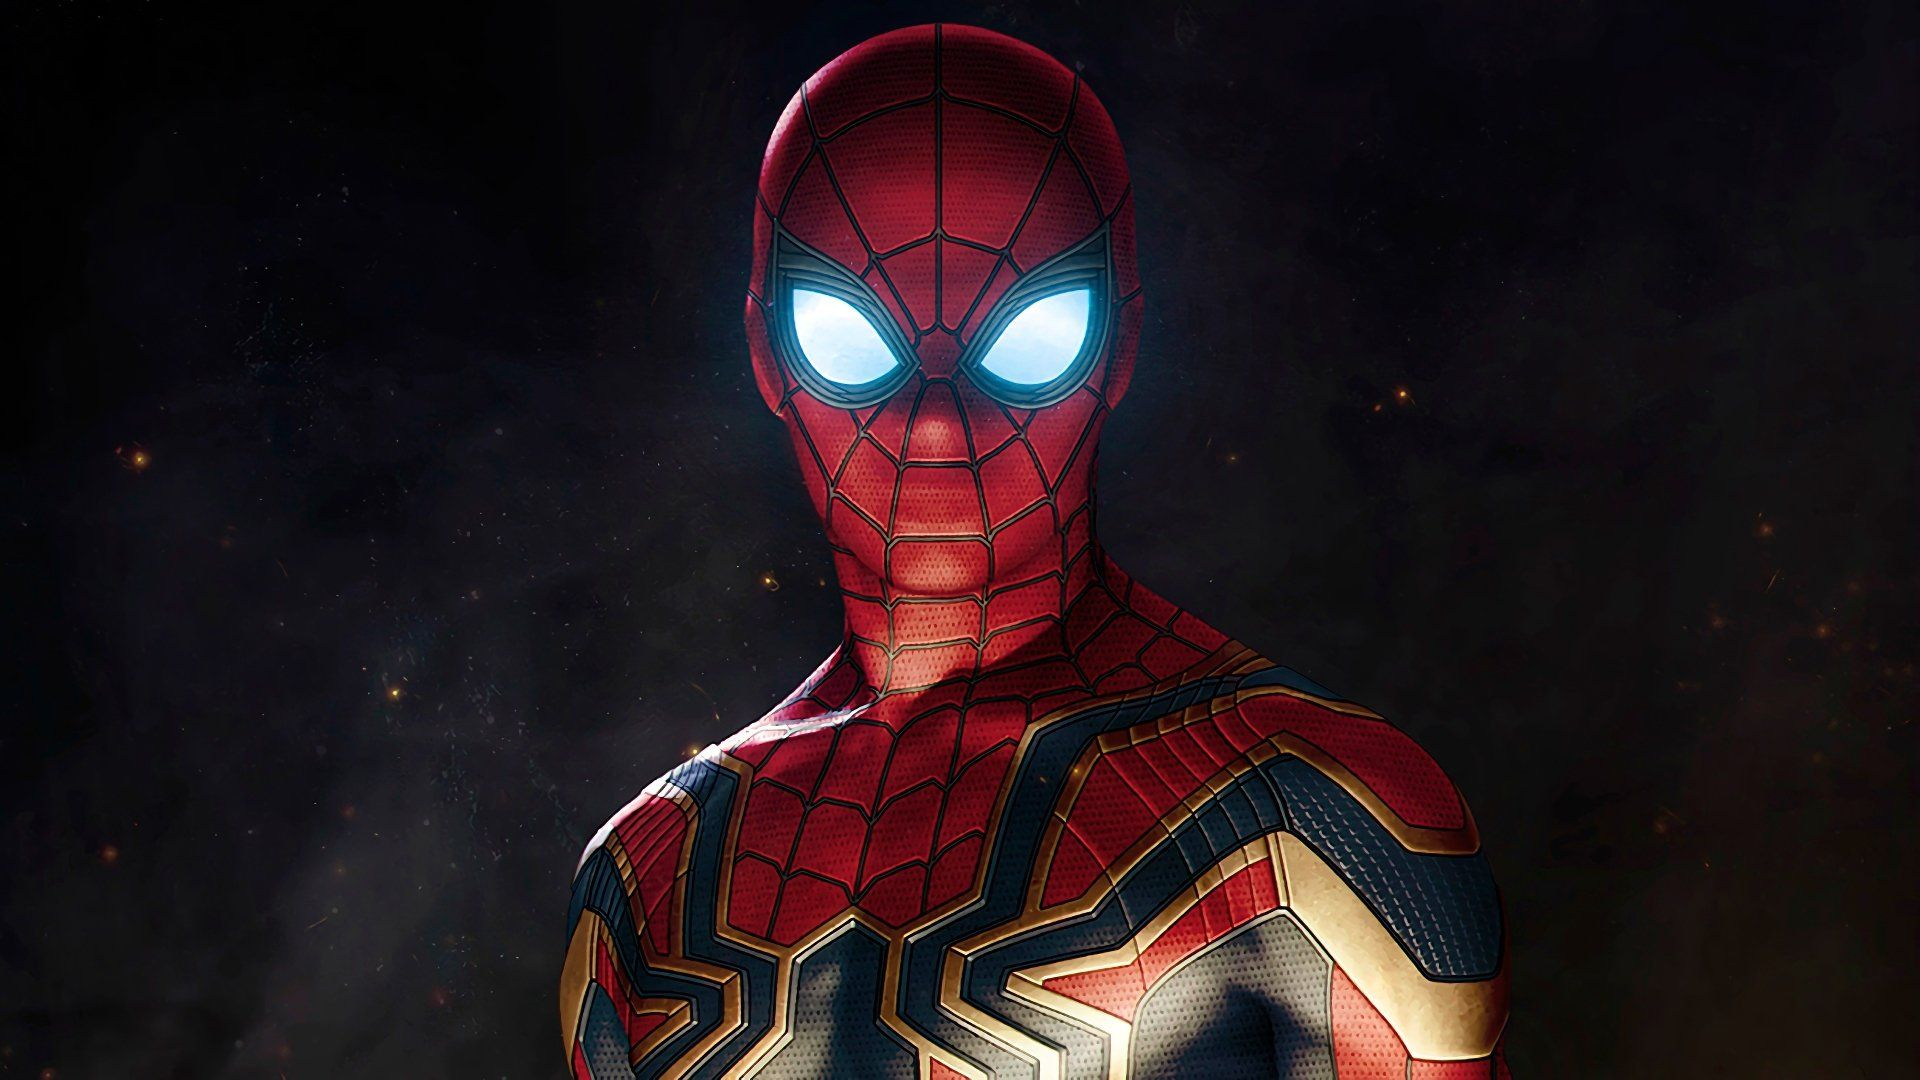 4K Marvel Wallpapers | HD Background Images | Photos ...